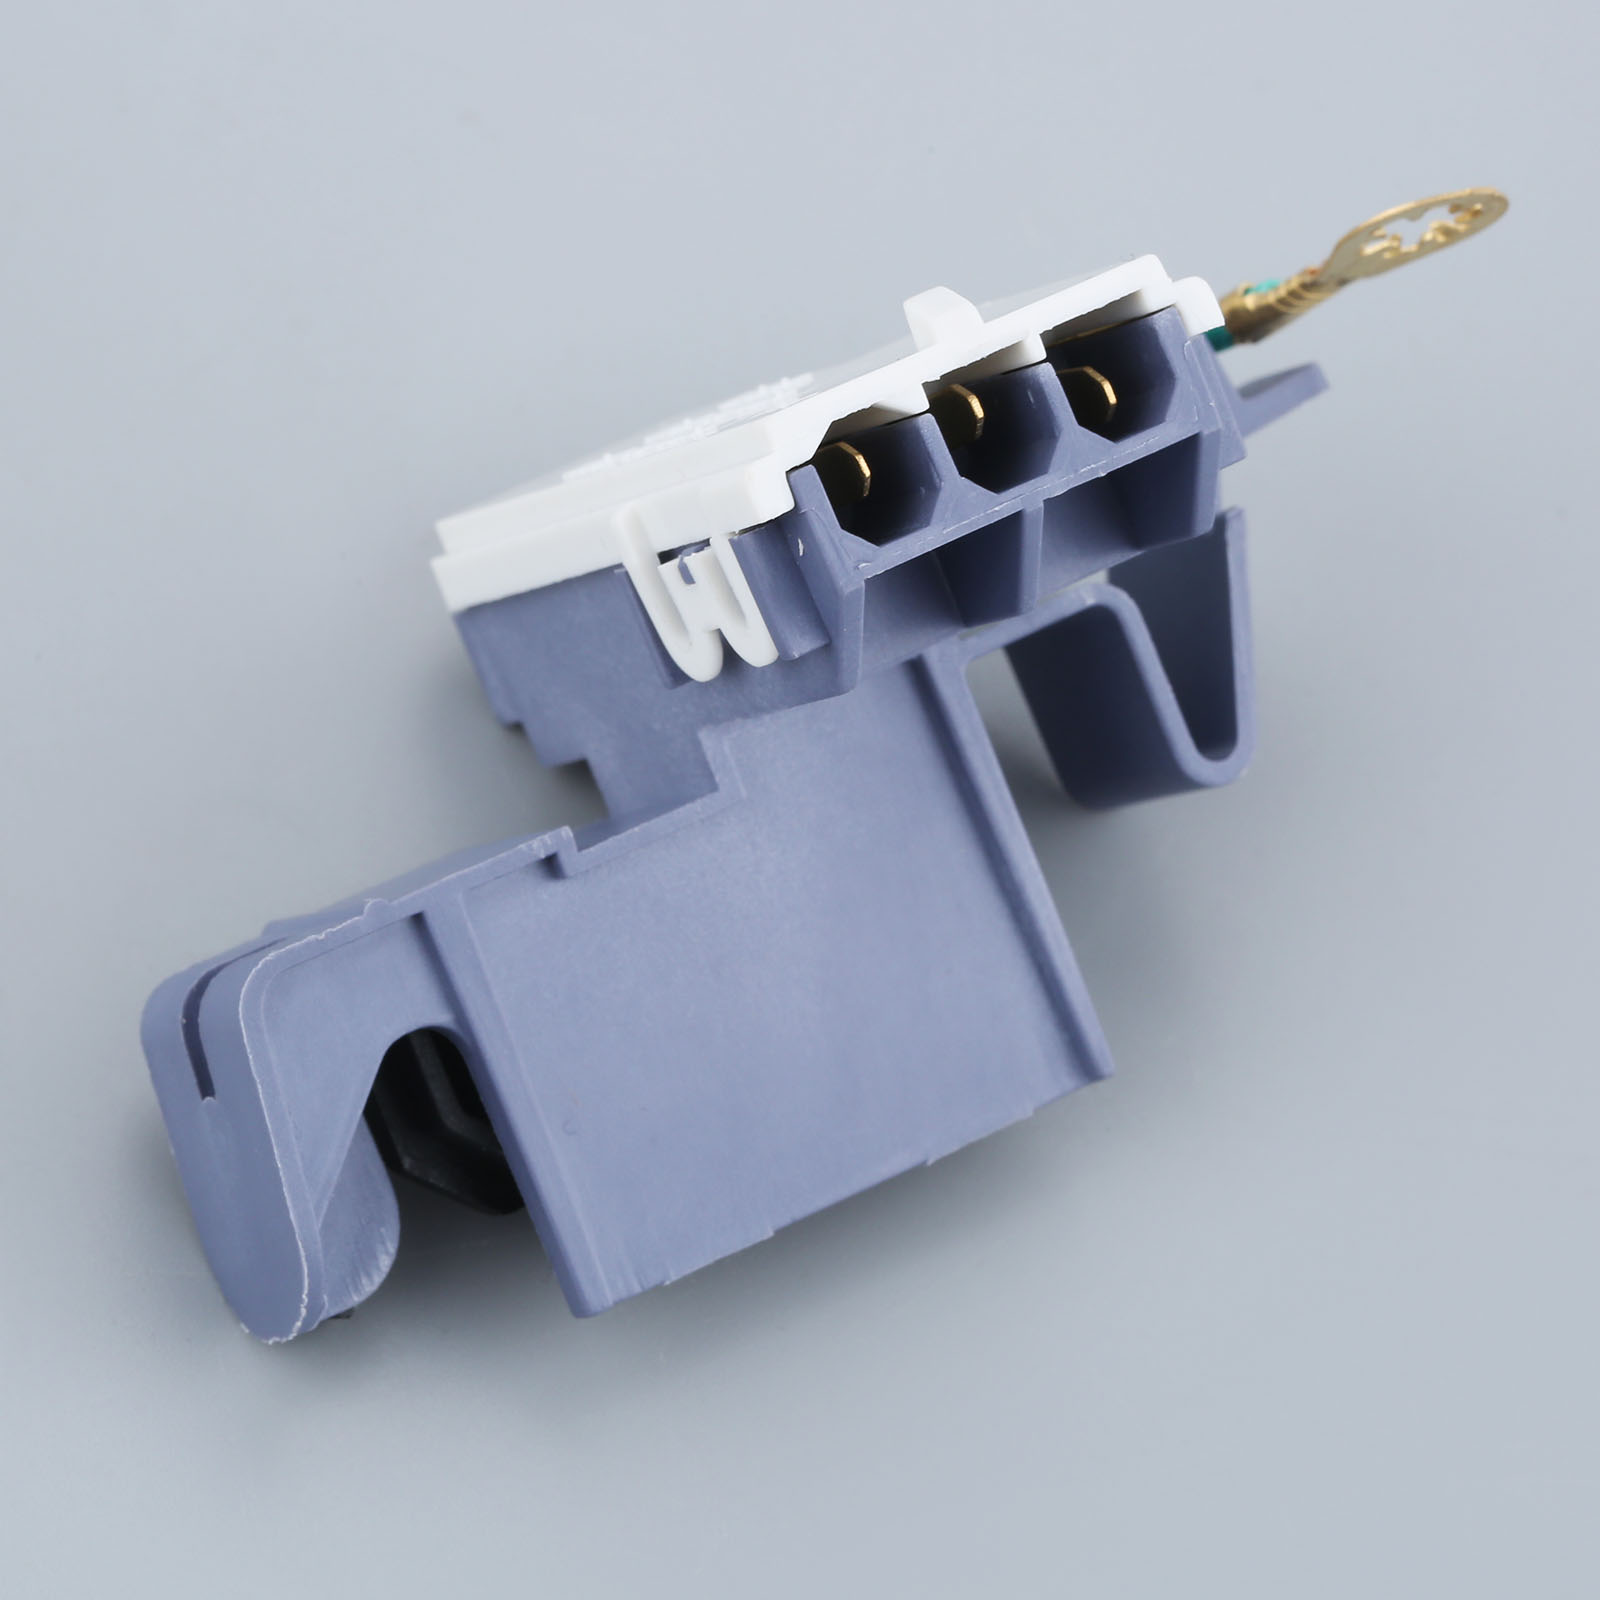 PS11745957 Washer Door Lid Switch Fits Whirlpool